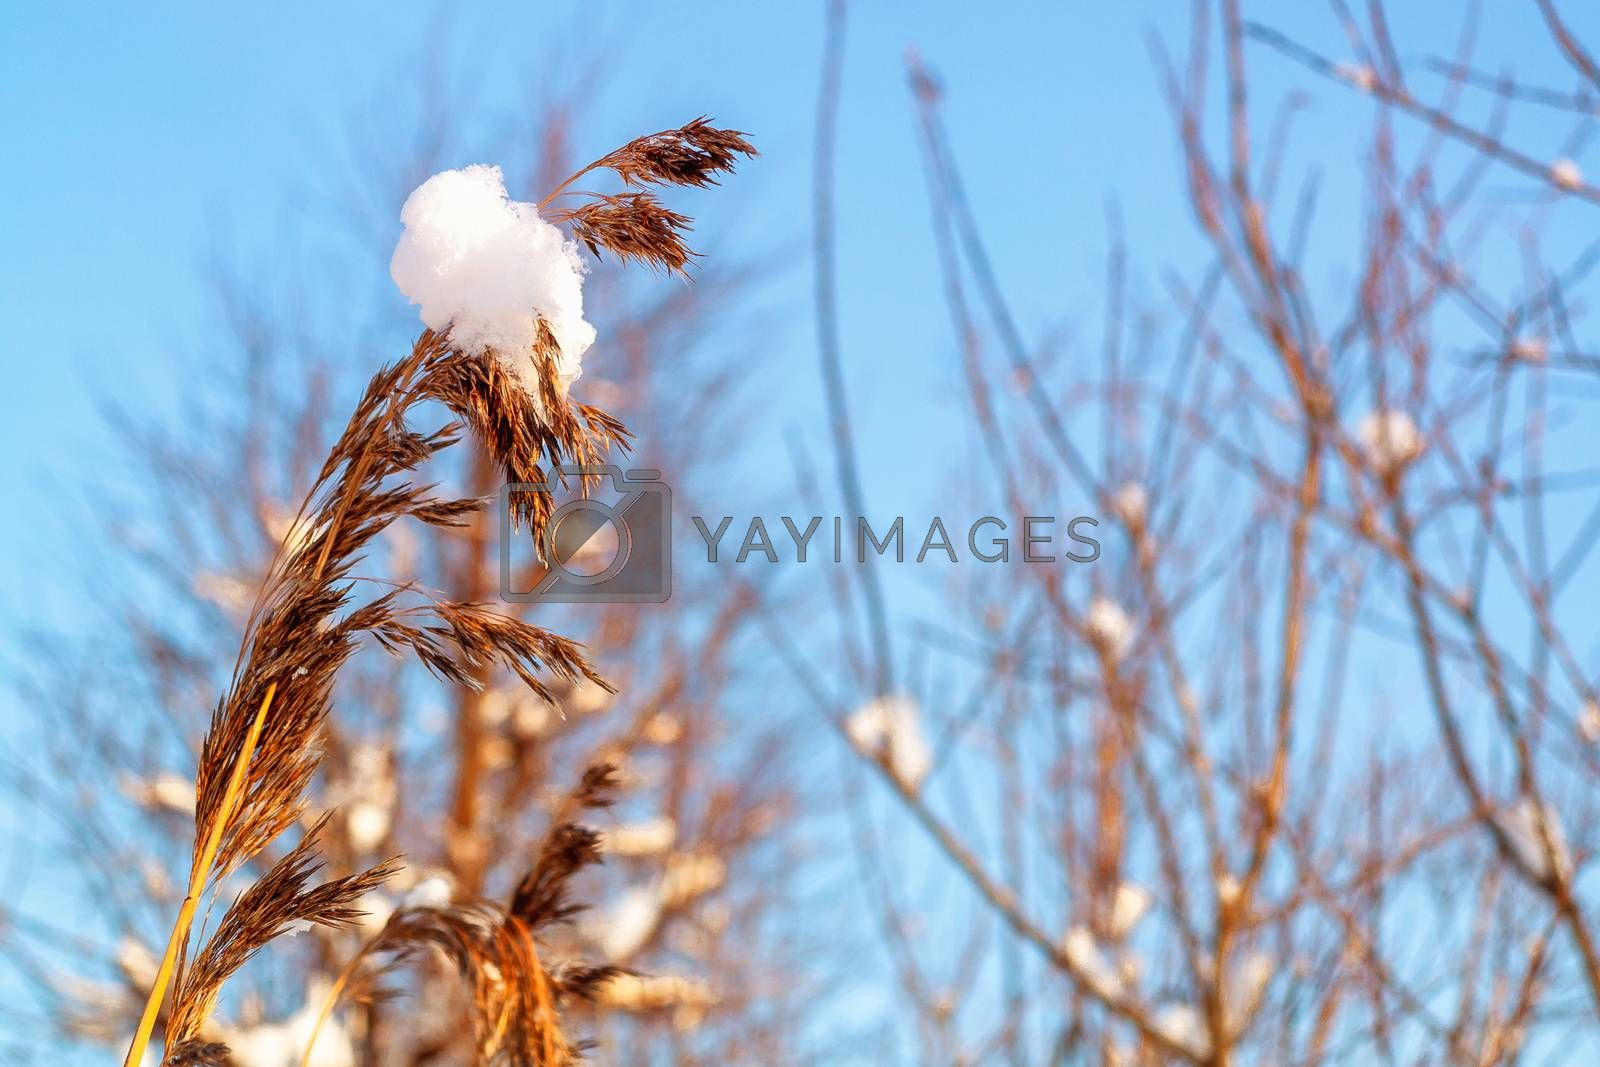 Spikelet of grass with a lump of snow and branches of bushes against the blue sky by galsand